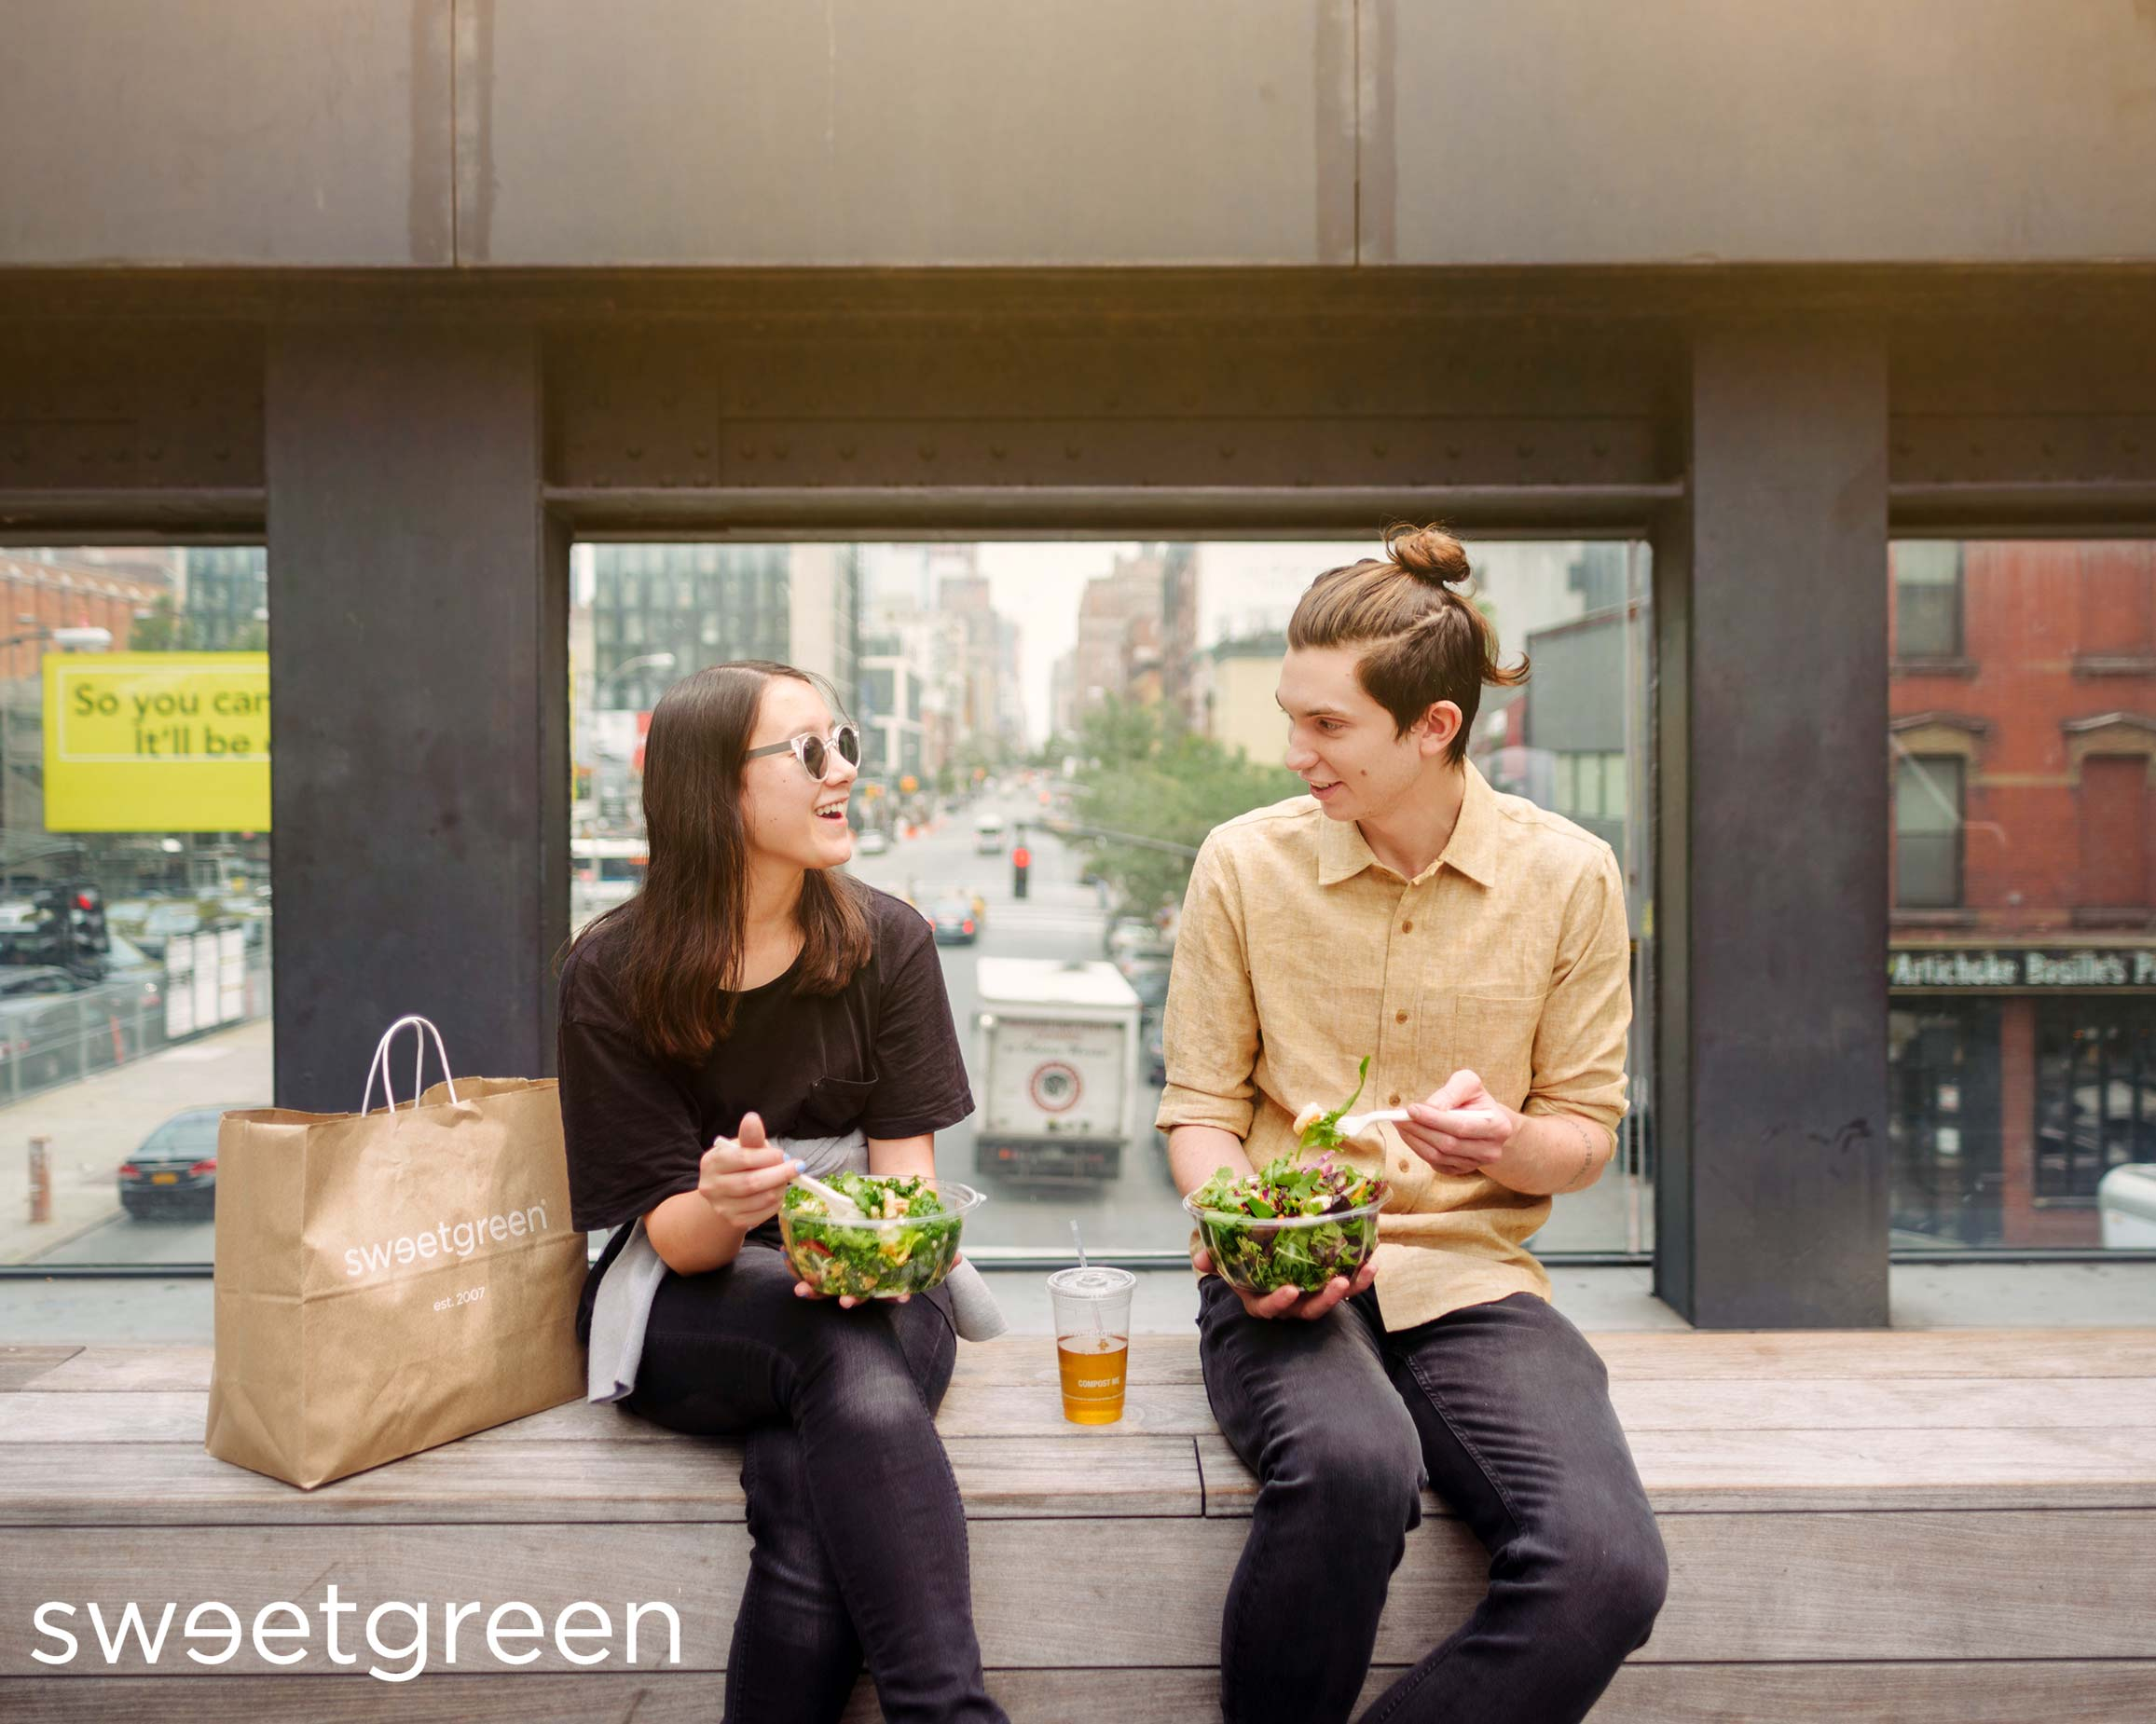 M. Cooper — #sweetlife Campaign / sweetgreen